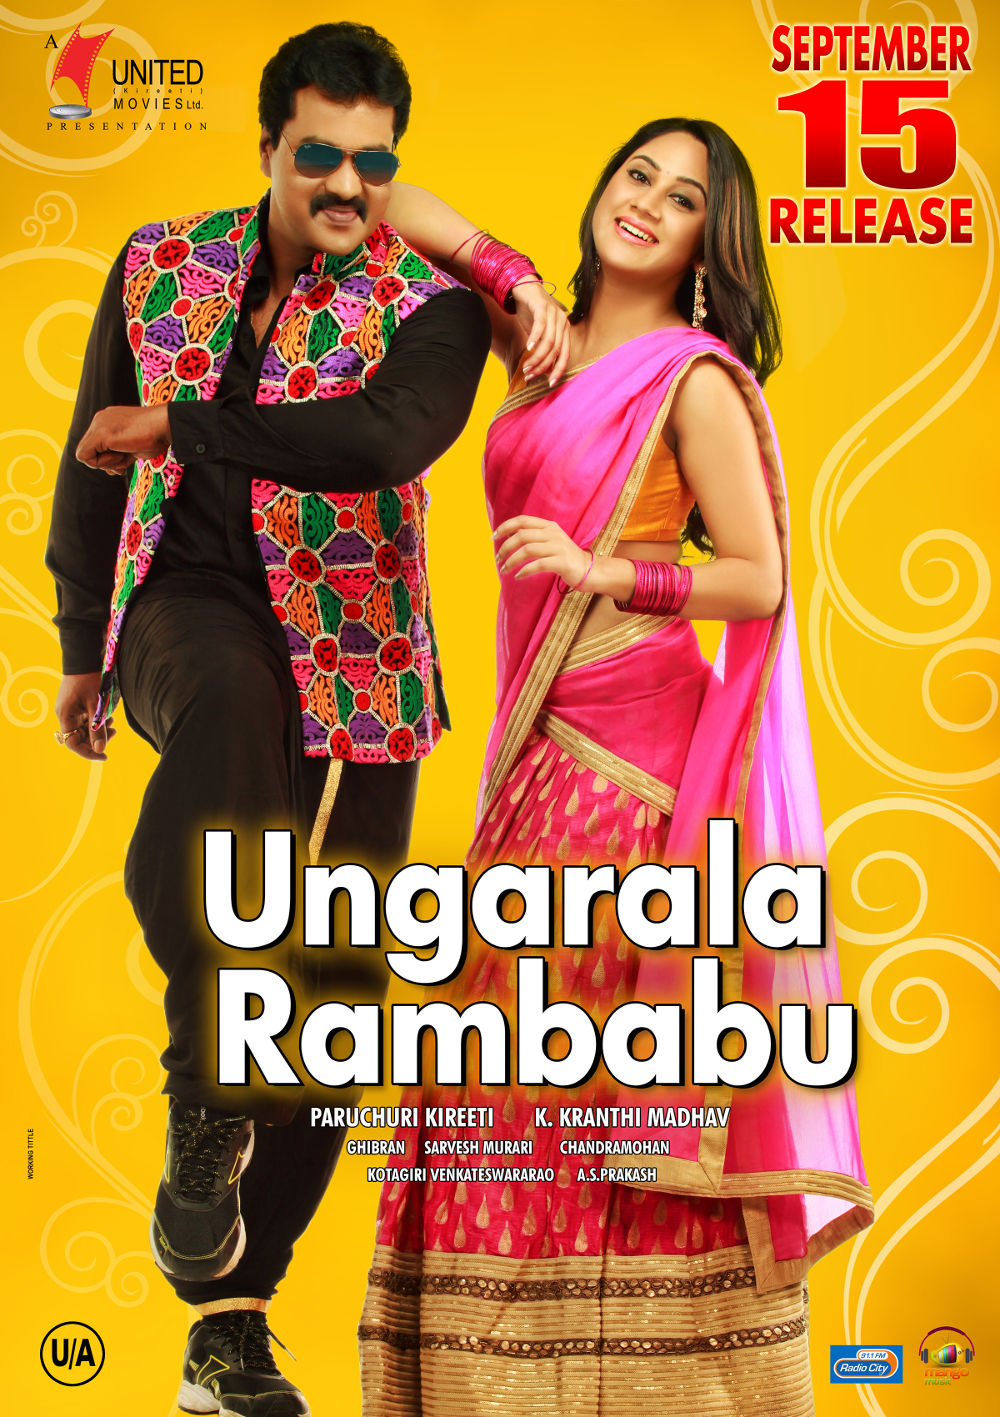 Sunil Miya George Ungarala Rambabu Movie September 15 Release Posters